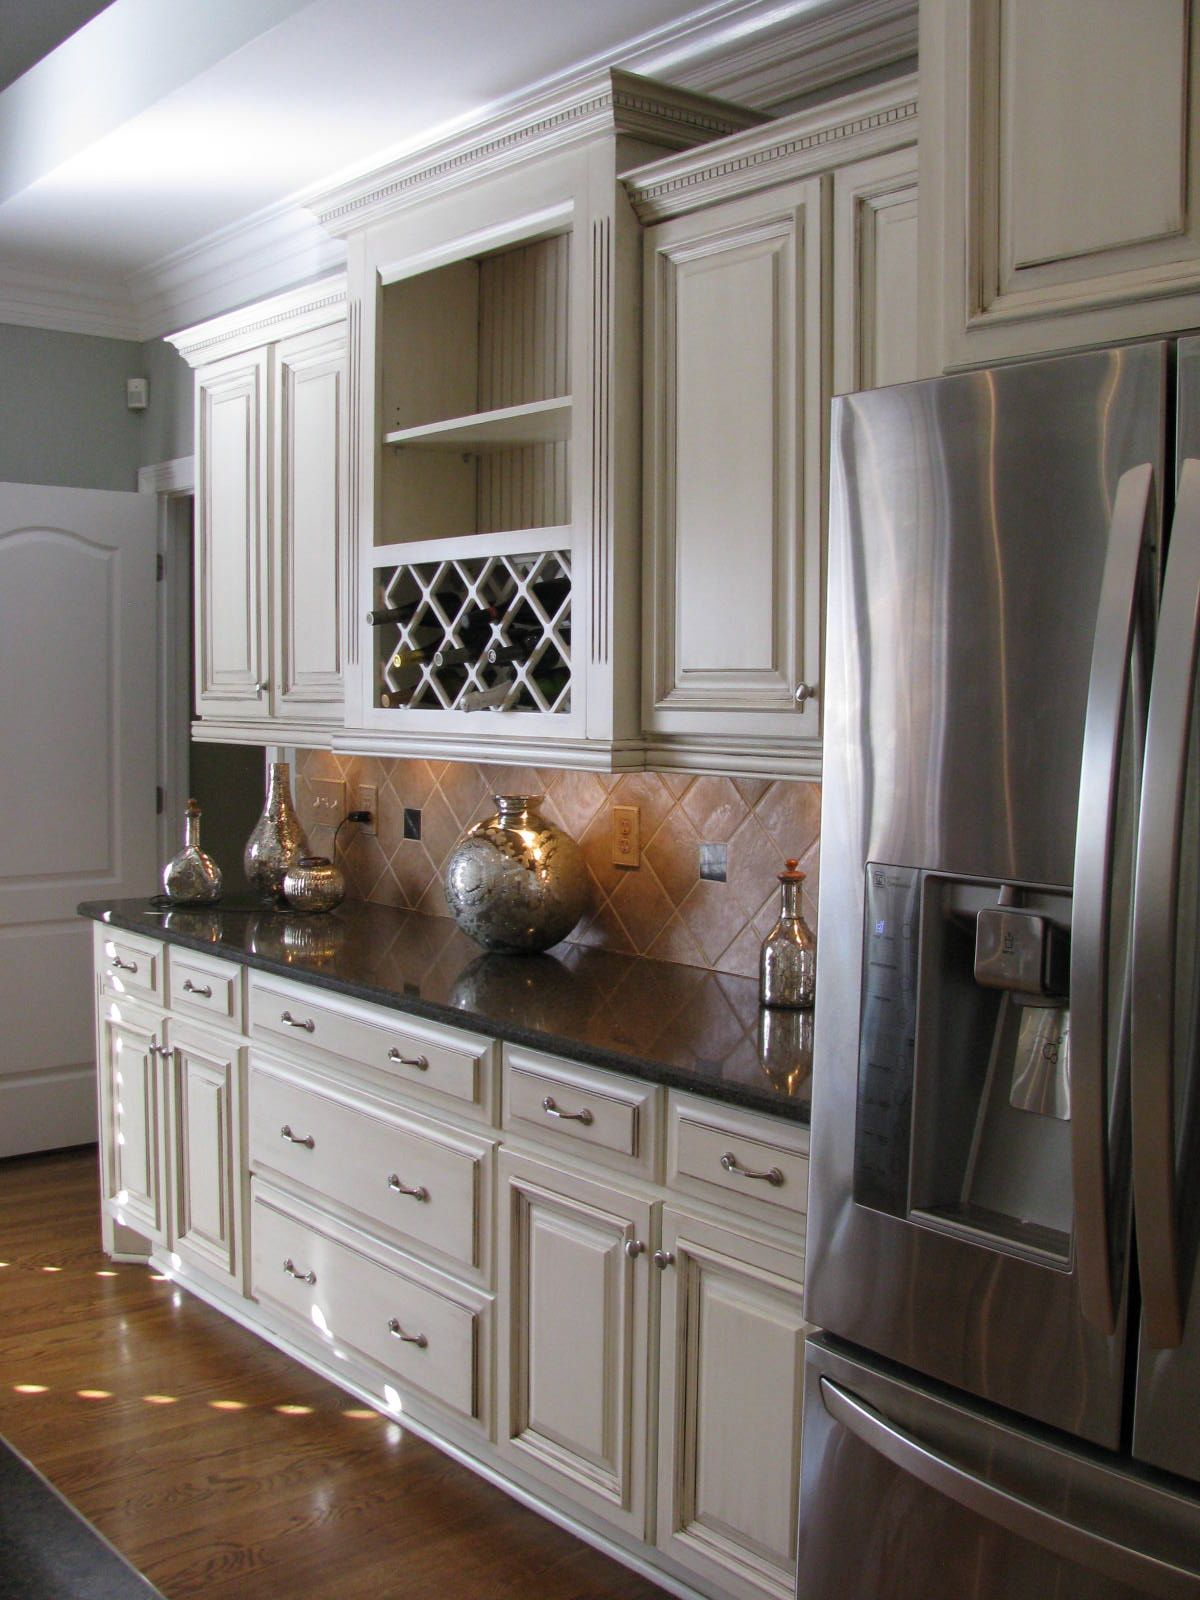 Posts About Cream With Chocolate Glaze Cabinets On Off White Cabinets Off White Kitchen Cabinets Off White Kitchens